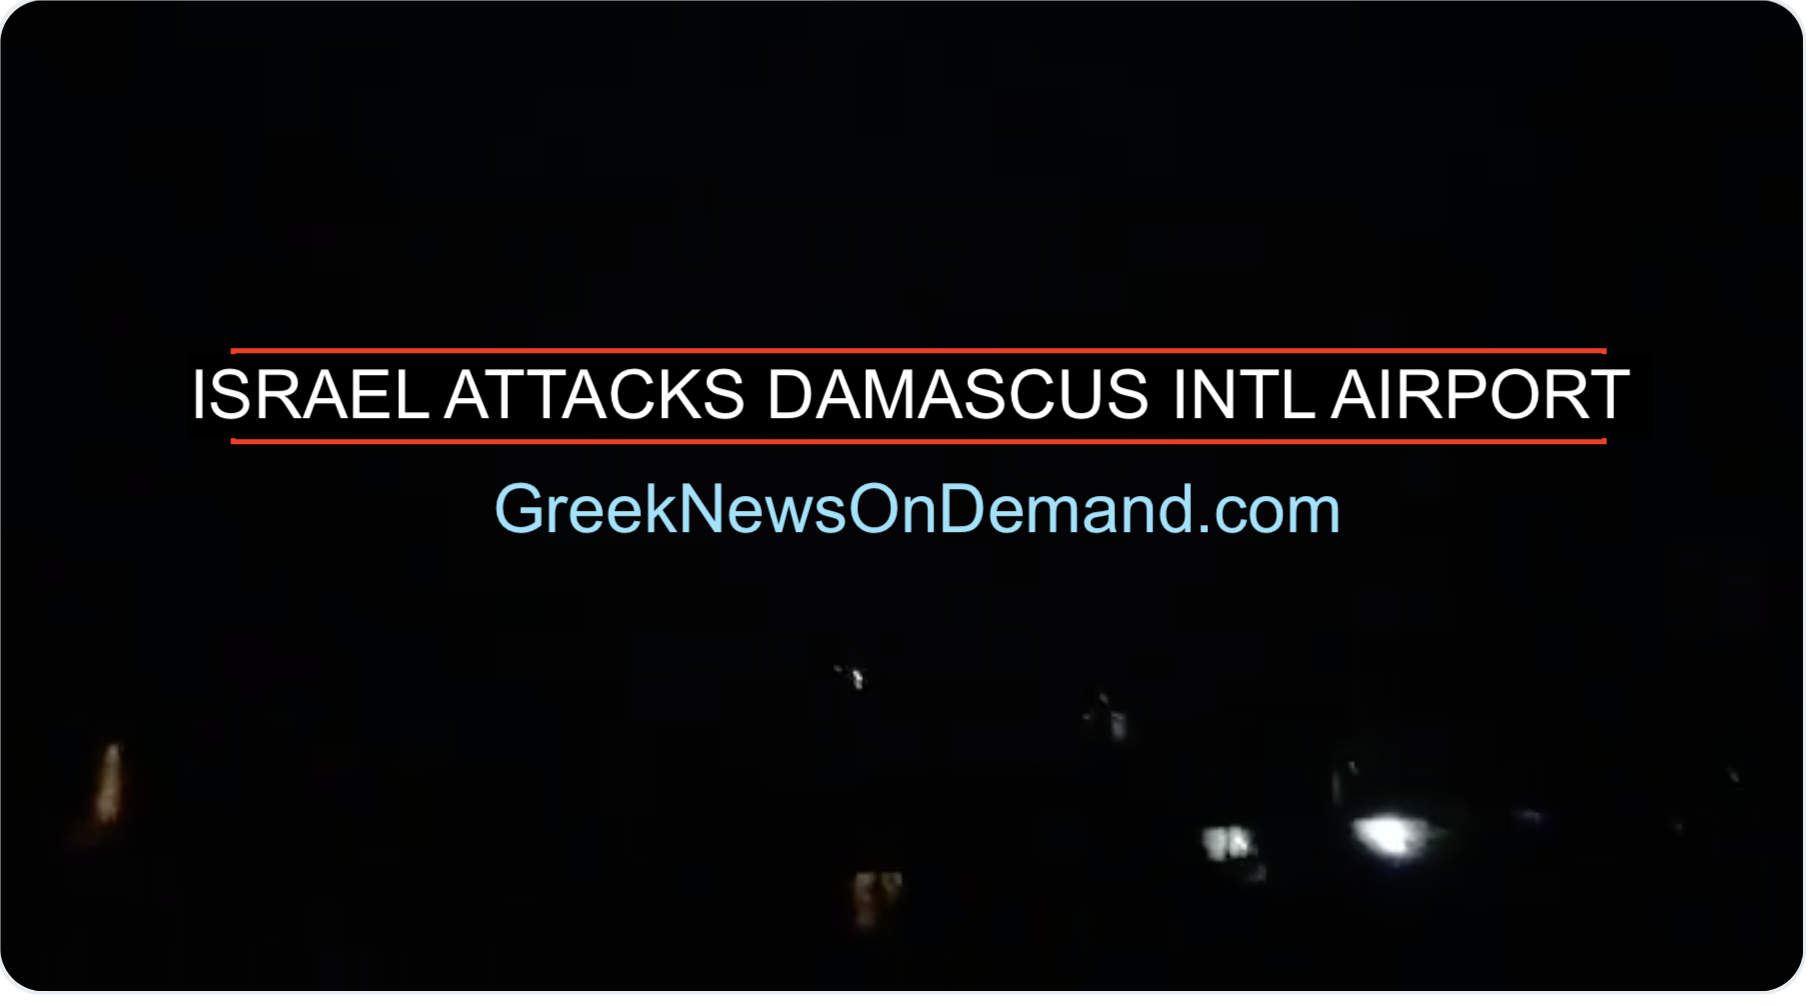 BREAKING: #Israel attacks Damascus international airport.